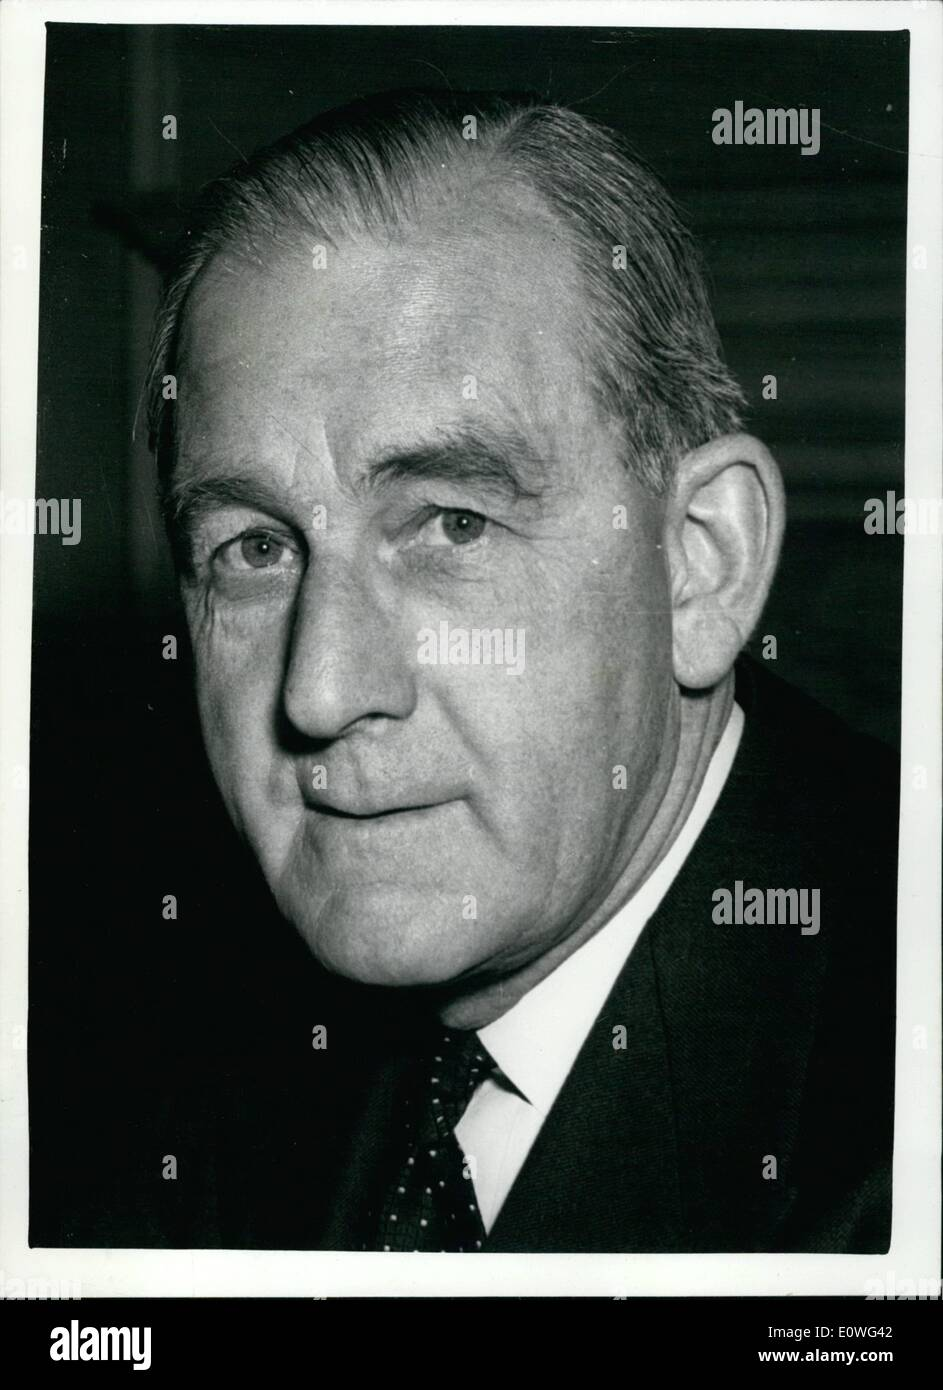 Nov. 11, 1962 - Labour attack on Government - following spy case.: Labour's ''Shadow'' Defence Minister - Mr. Patrick Gordon Walker, said in the House of Commons today that there seemed to have been a compulsion by the Admiralty to make William Vassall, the spy now serving 18 years imprisonment - personal assistant to high people in that department. Defence Minister Peter Thorneycroft - in his reply, angrily dismissed some of the 'wild charges' in the case. Present in the House were the First Lord of the Admiralty Lord Carrington and Mr - Stock Image